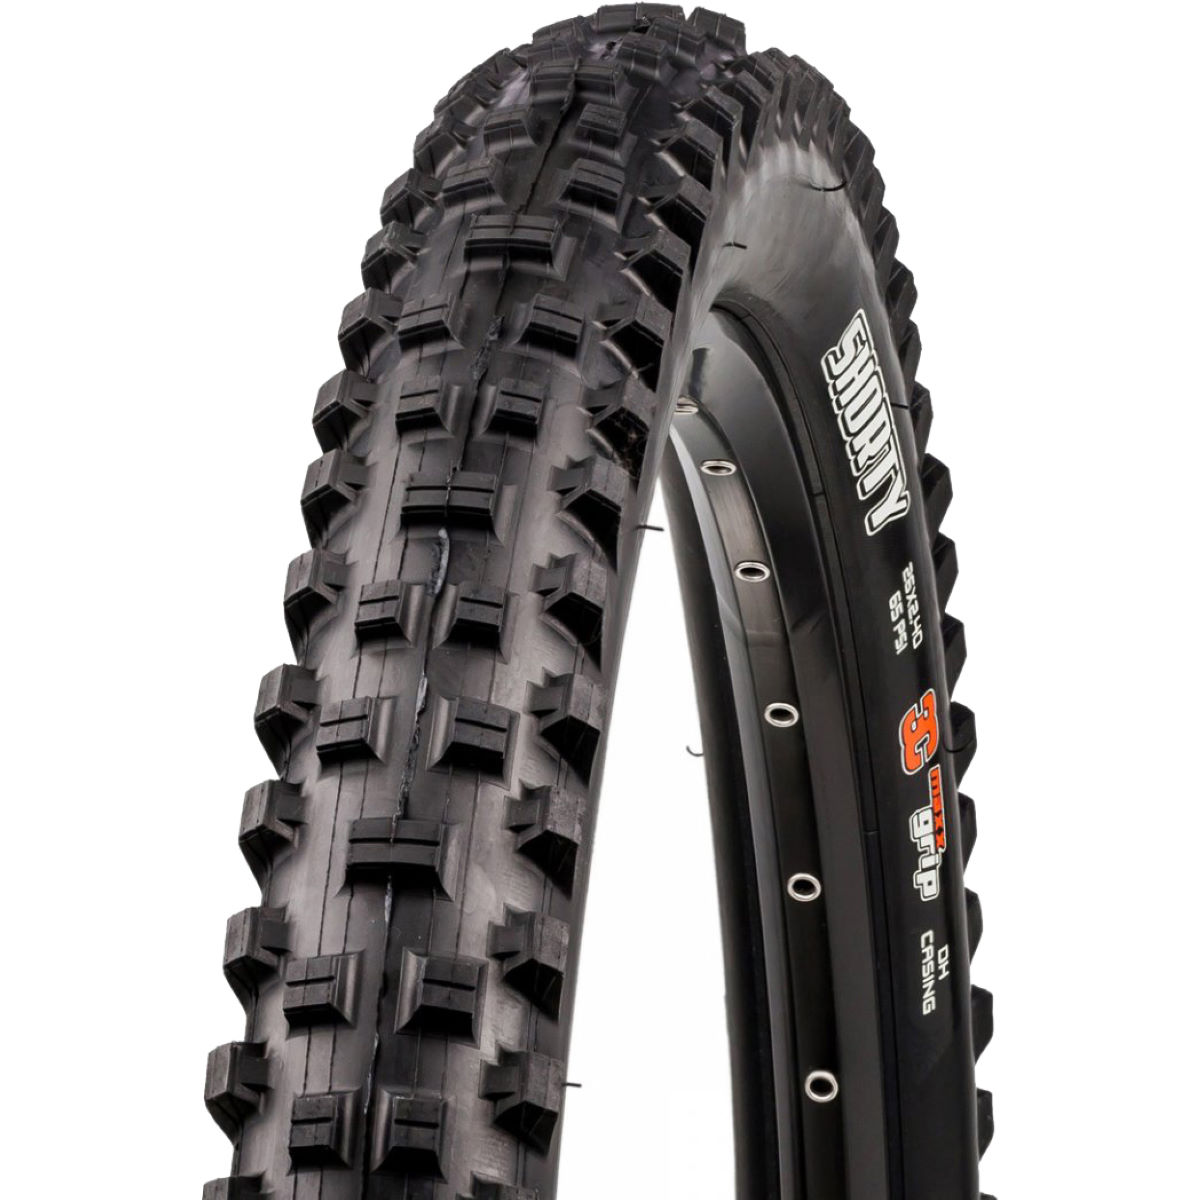 Maxxis Maxxis Shorty DH MTB WT Tyre - 3C - TR   Tyres